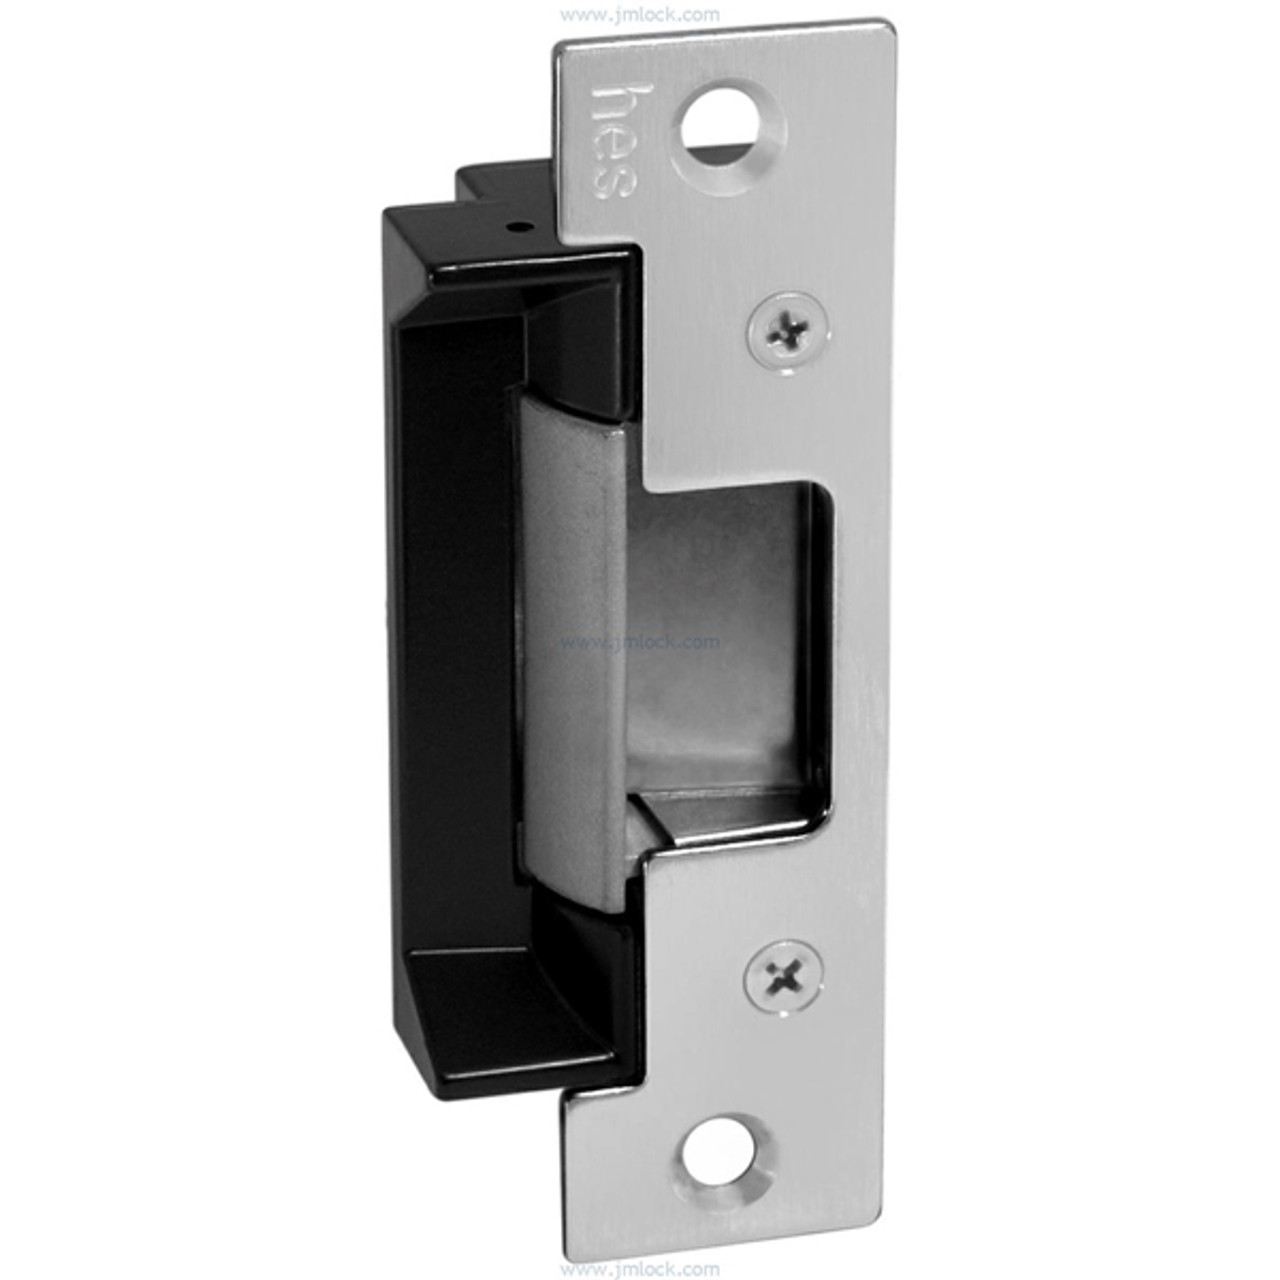 HES 5000 Electric Door Strike With Stainless Steel Faceplate  sc 1 st  Smarter Building Tech & HES 5000 Series Electric Door Strike With Stainless Steel Faceplate ...